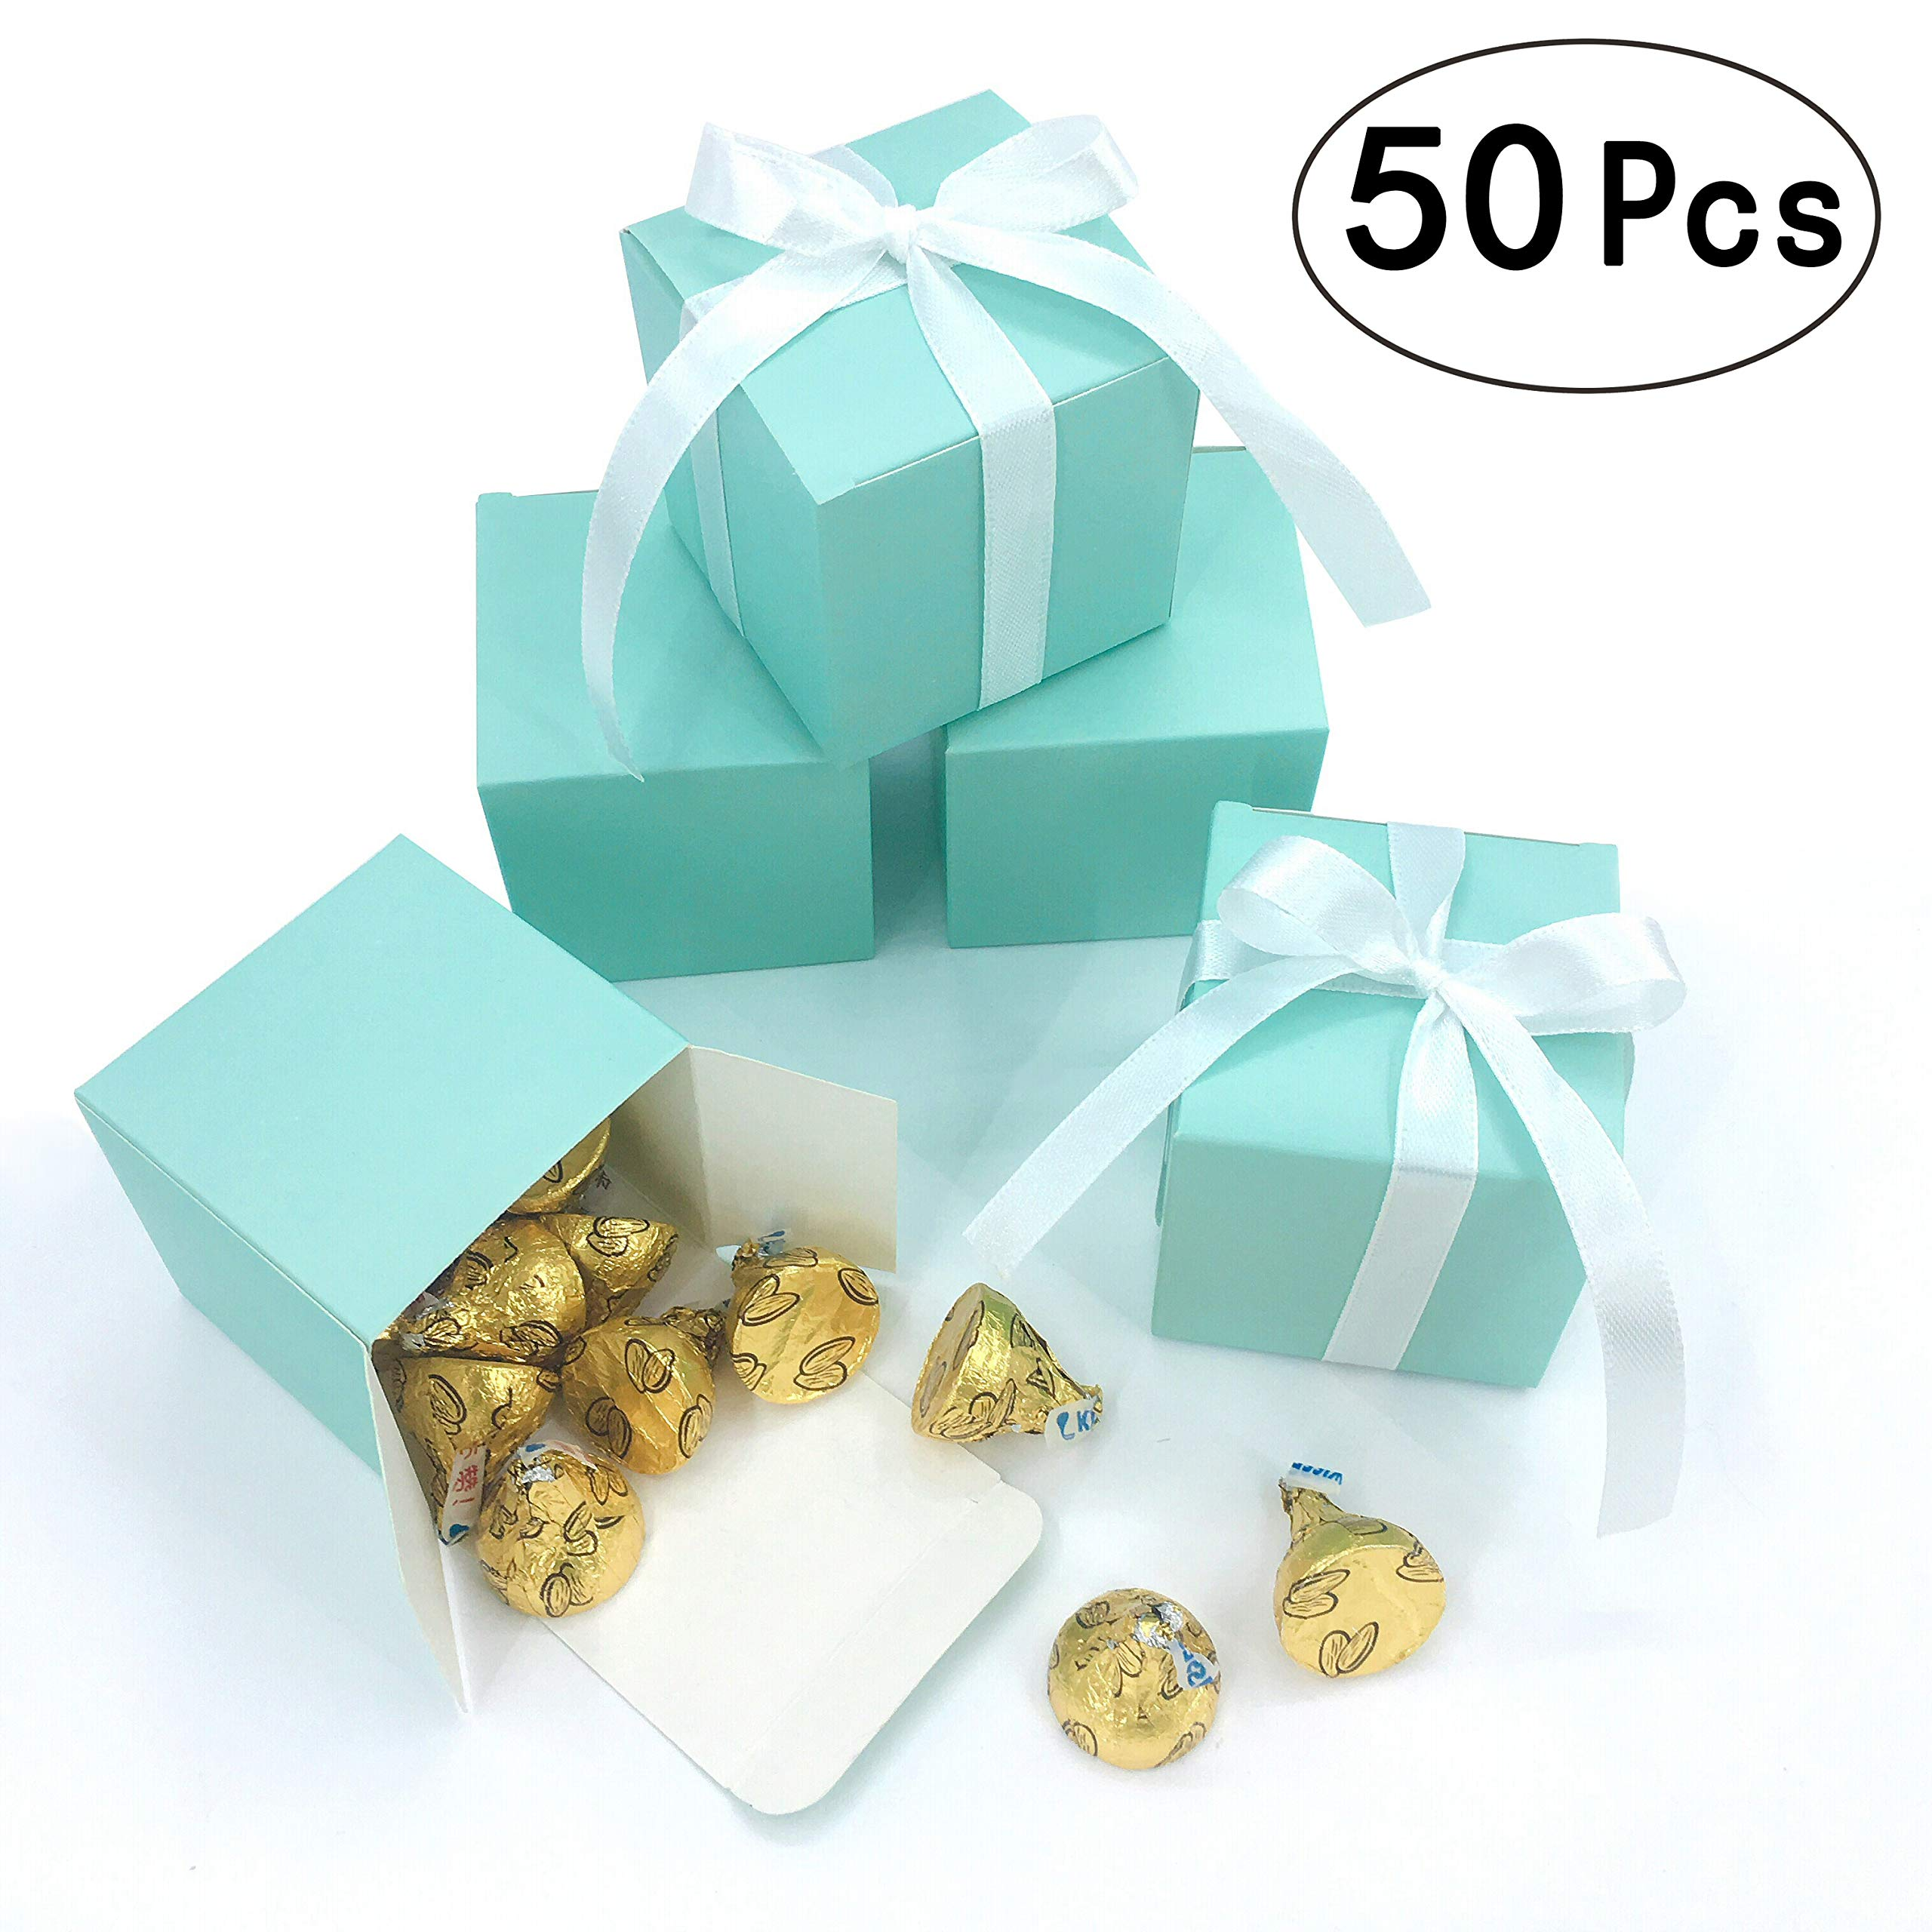 Details About Small Cube Turquoise Candy Treat Boxes Bulk Teal Blue Gift Boxes Wedding Favors